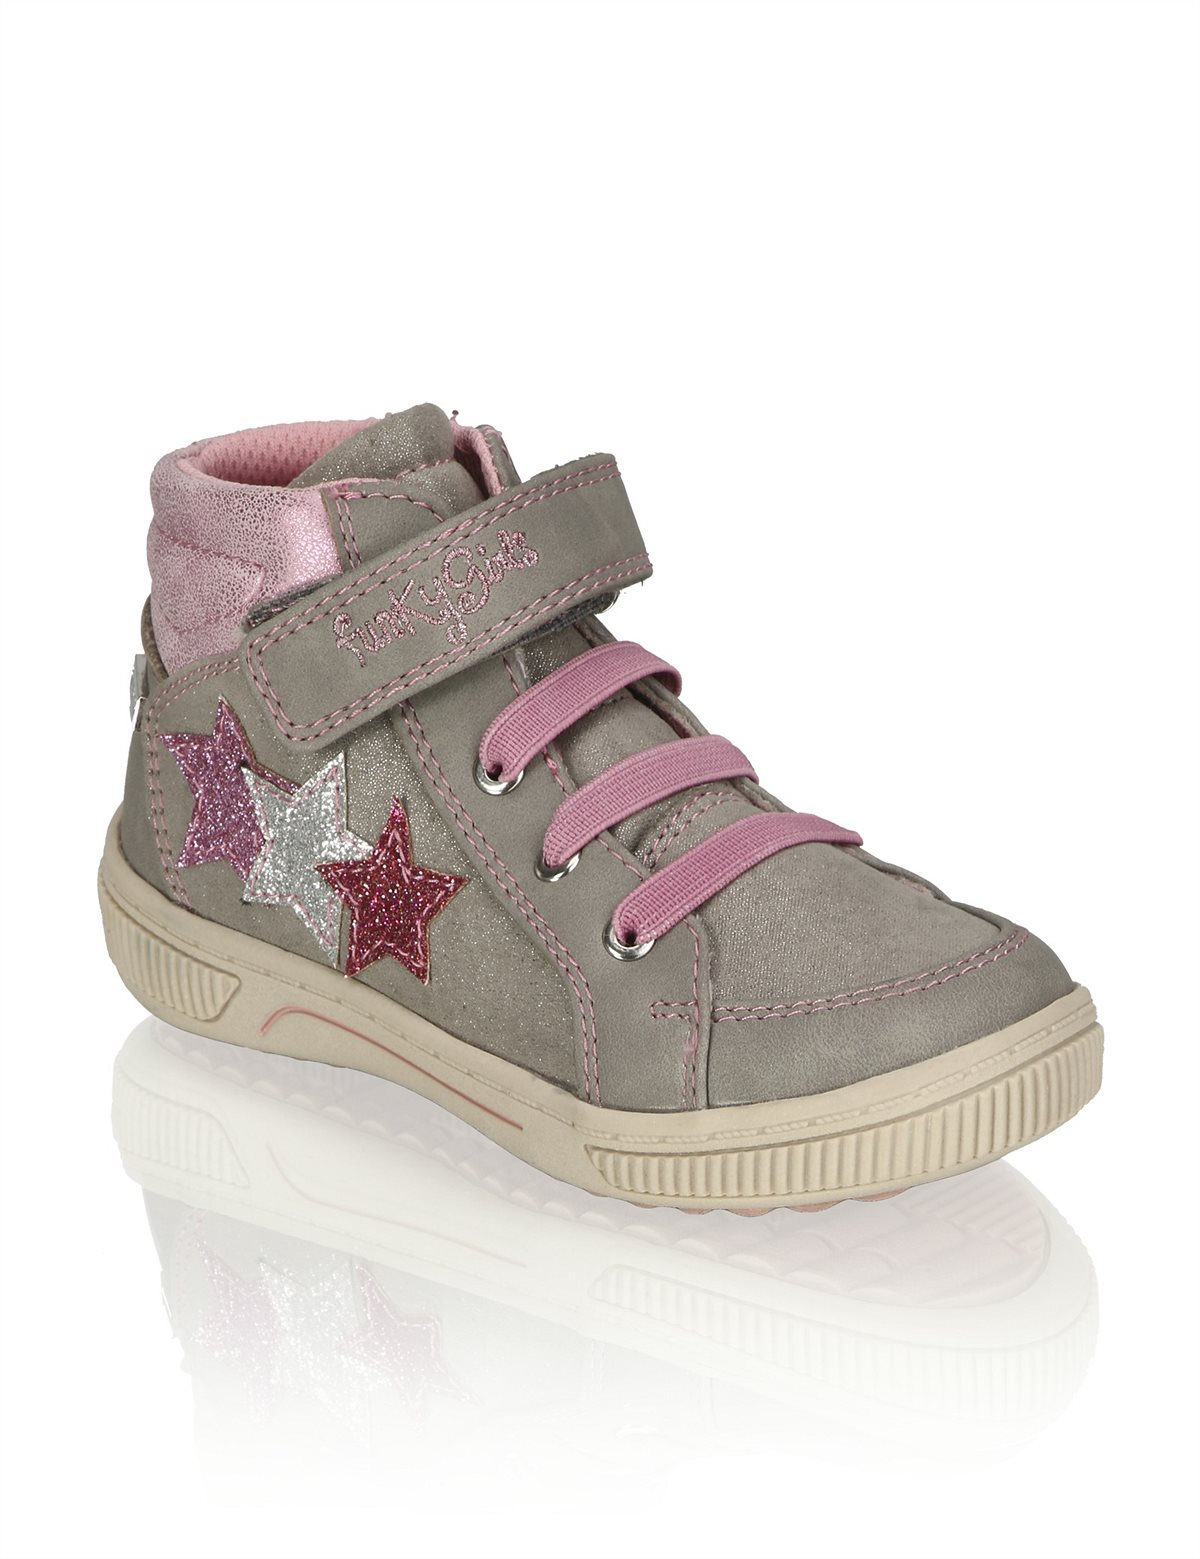 HUMANIC 03 Kids Funky Girls Boot ab EUR 34,95 ab Ende Juli 3223505944